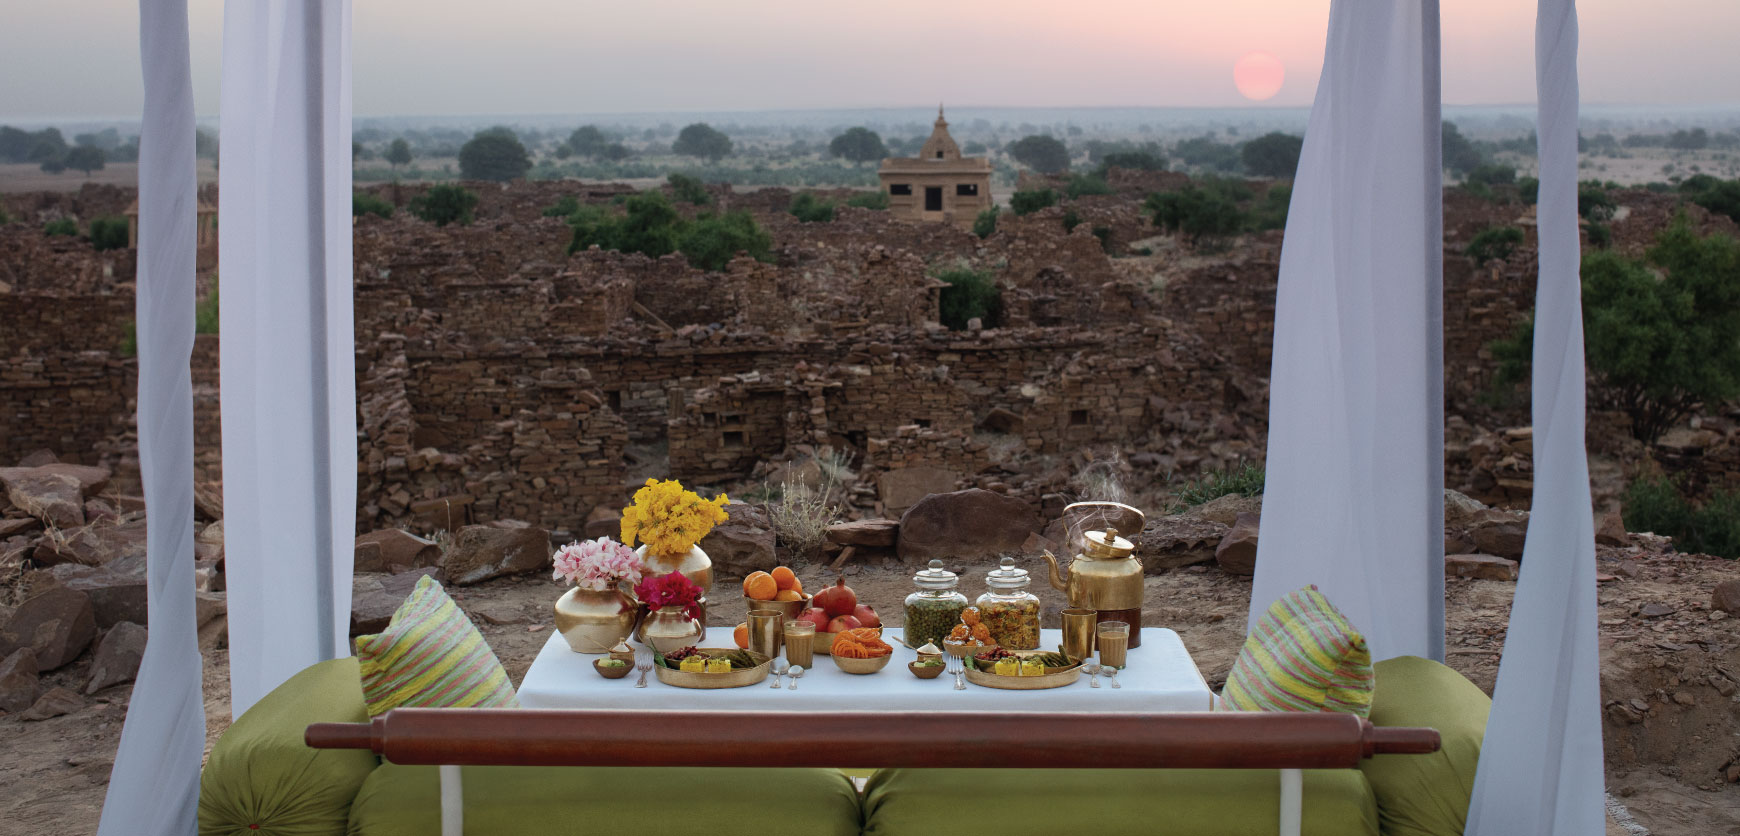 Breakfast with Peacocks at Suryagarh